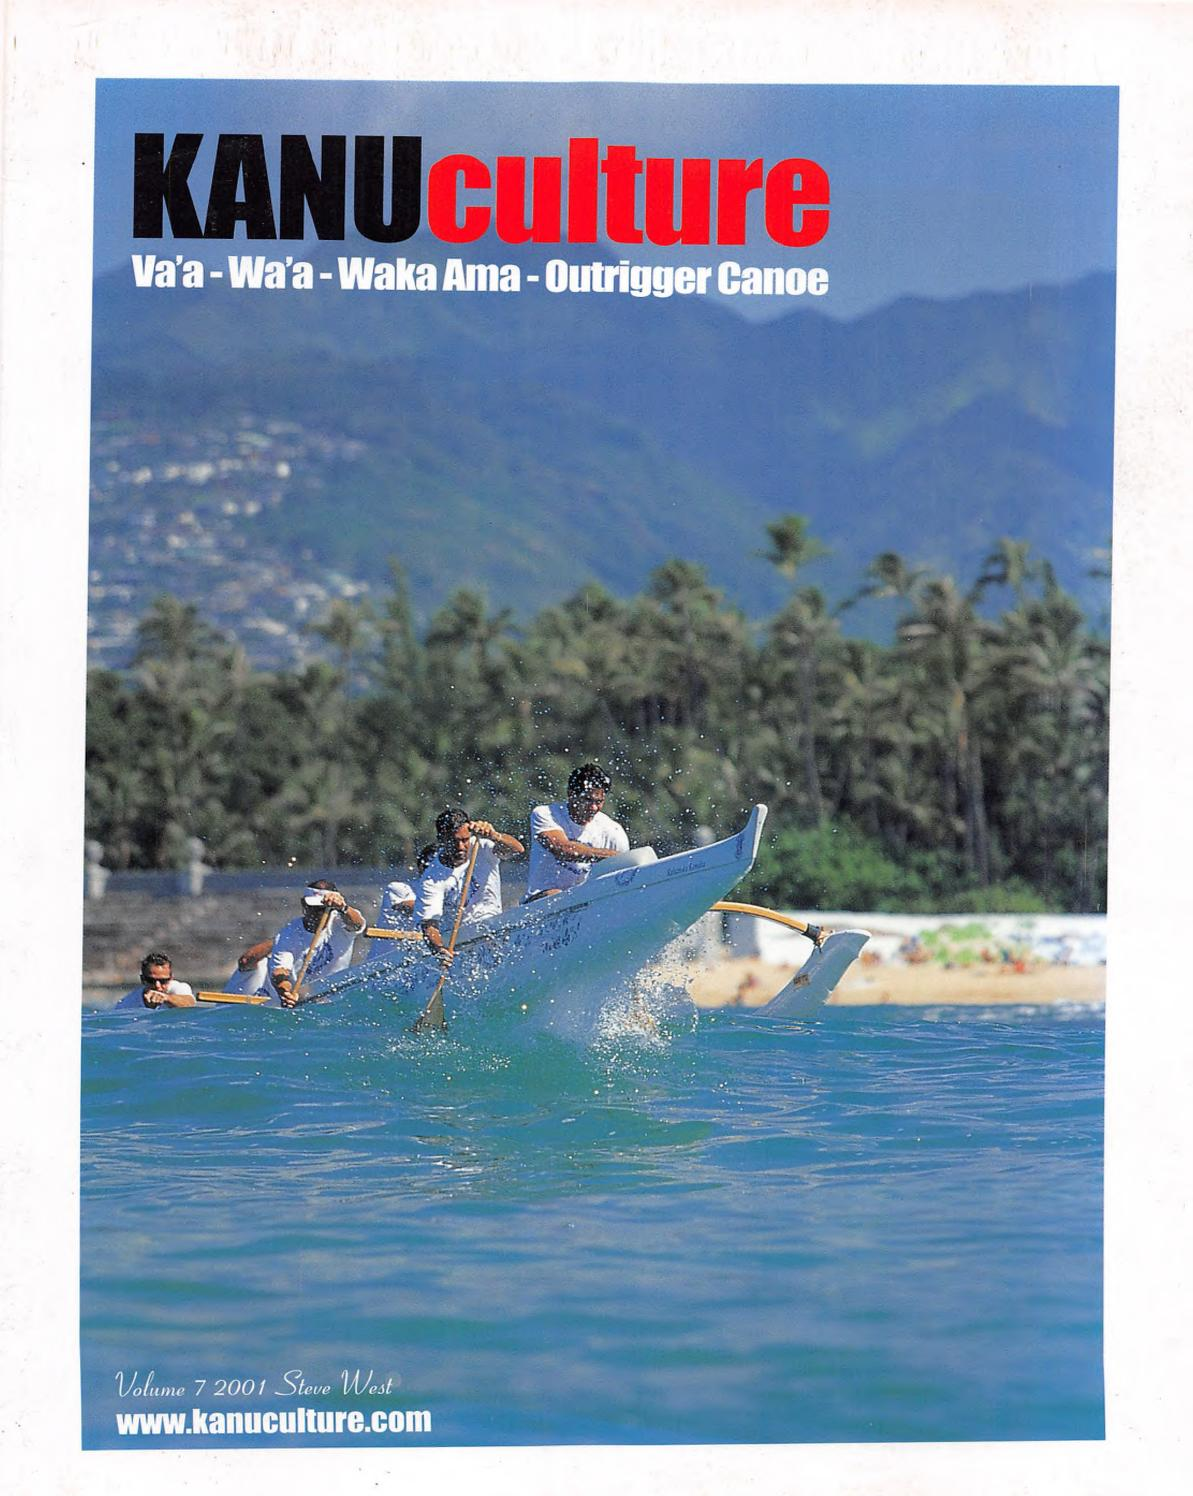 426c425e00005 KANUculture Vol 7 2001 by Kanu Culture / Batini Books - issuu